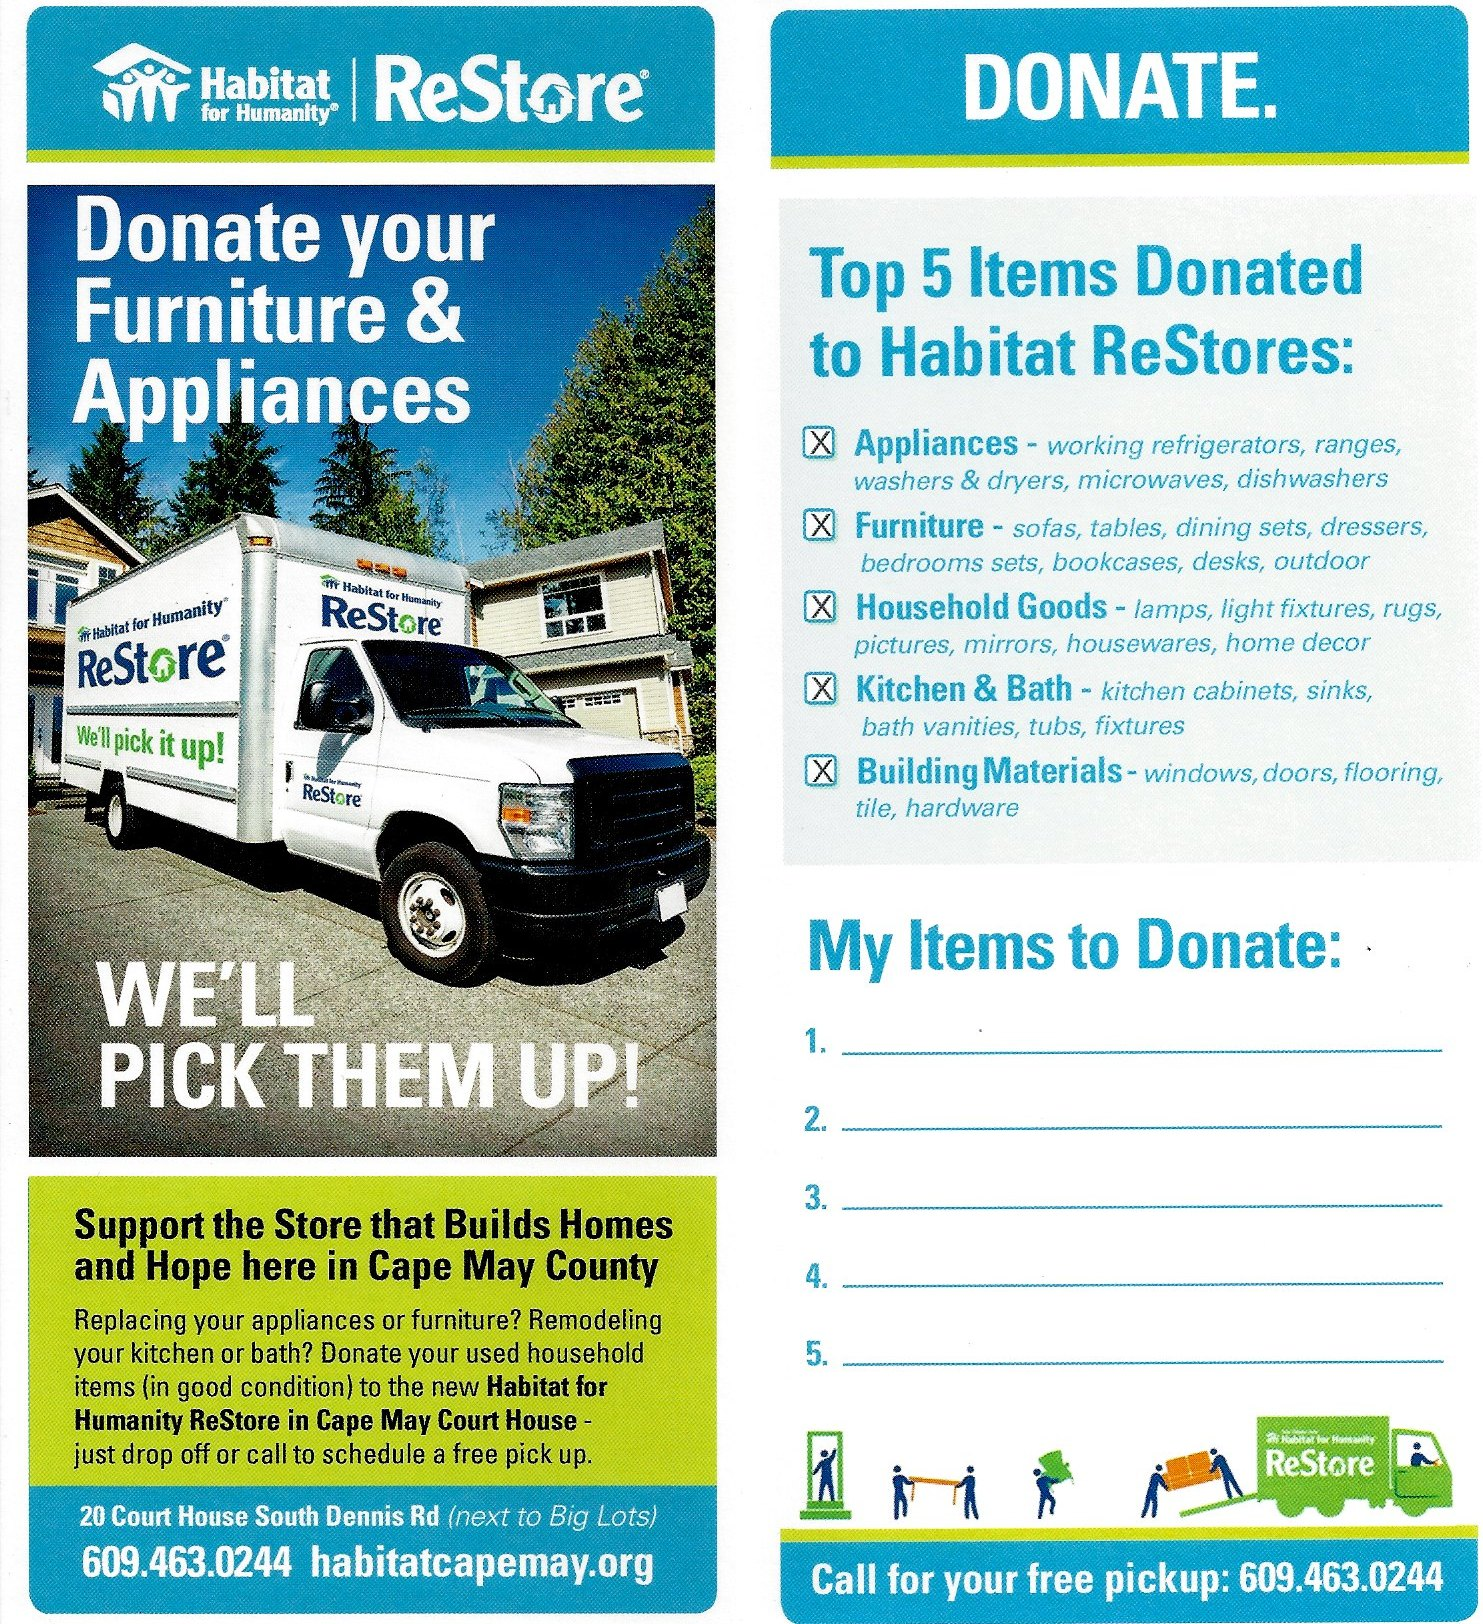 Donate Furniture Near Me Pick Up Habitat For Humanity Restore Donate Furniture Appliances